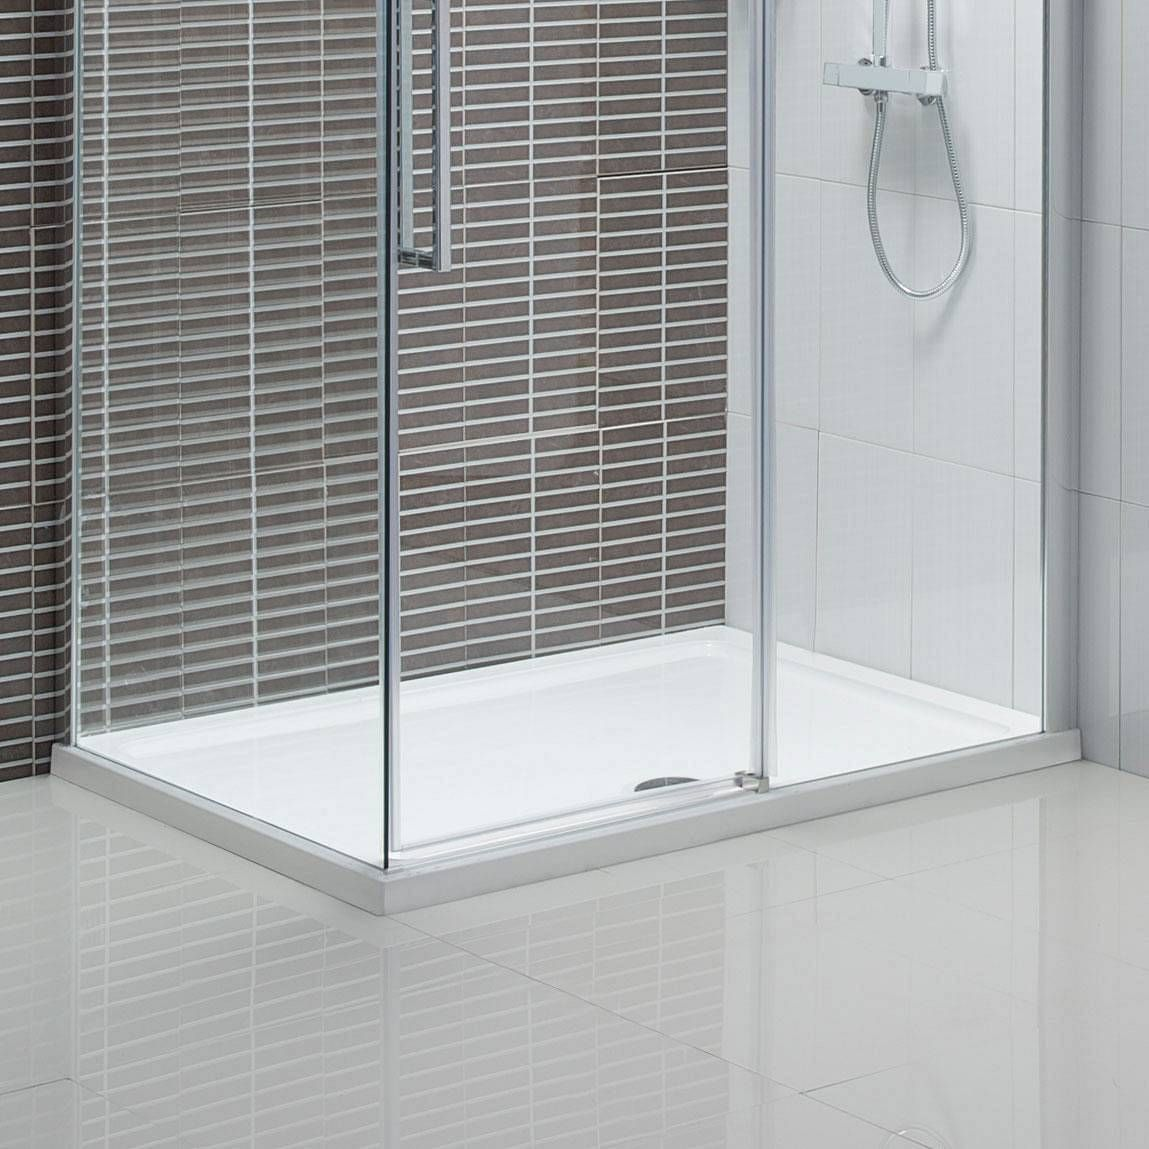 Orchard Rectangular Stone Shower Tray Up To 1200mm In 2020 Stone Shower Modern Shower Shower Tray Sizes